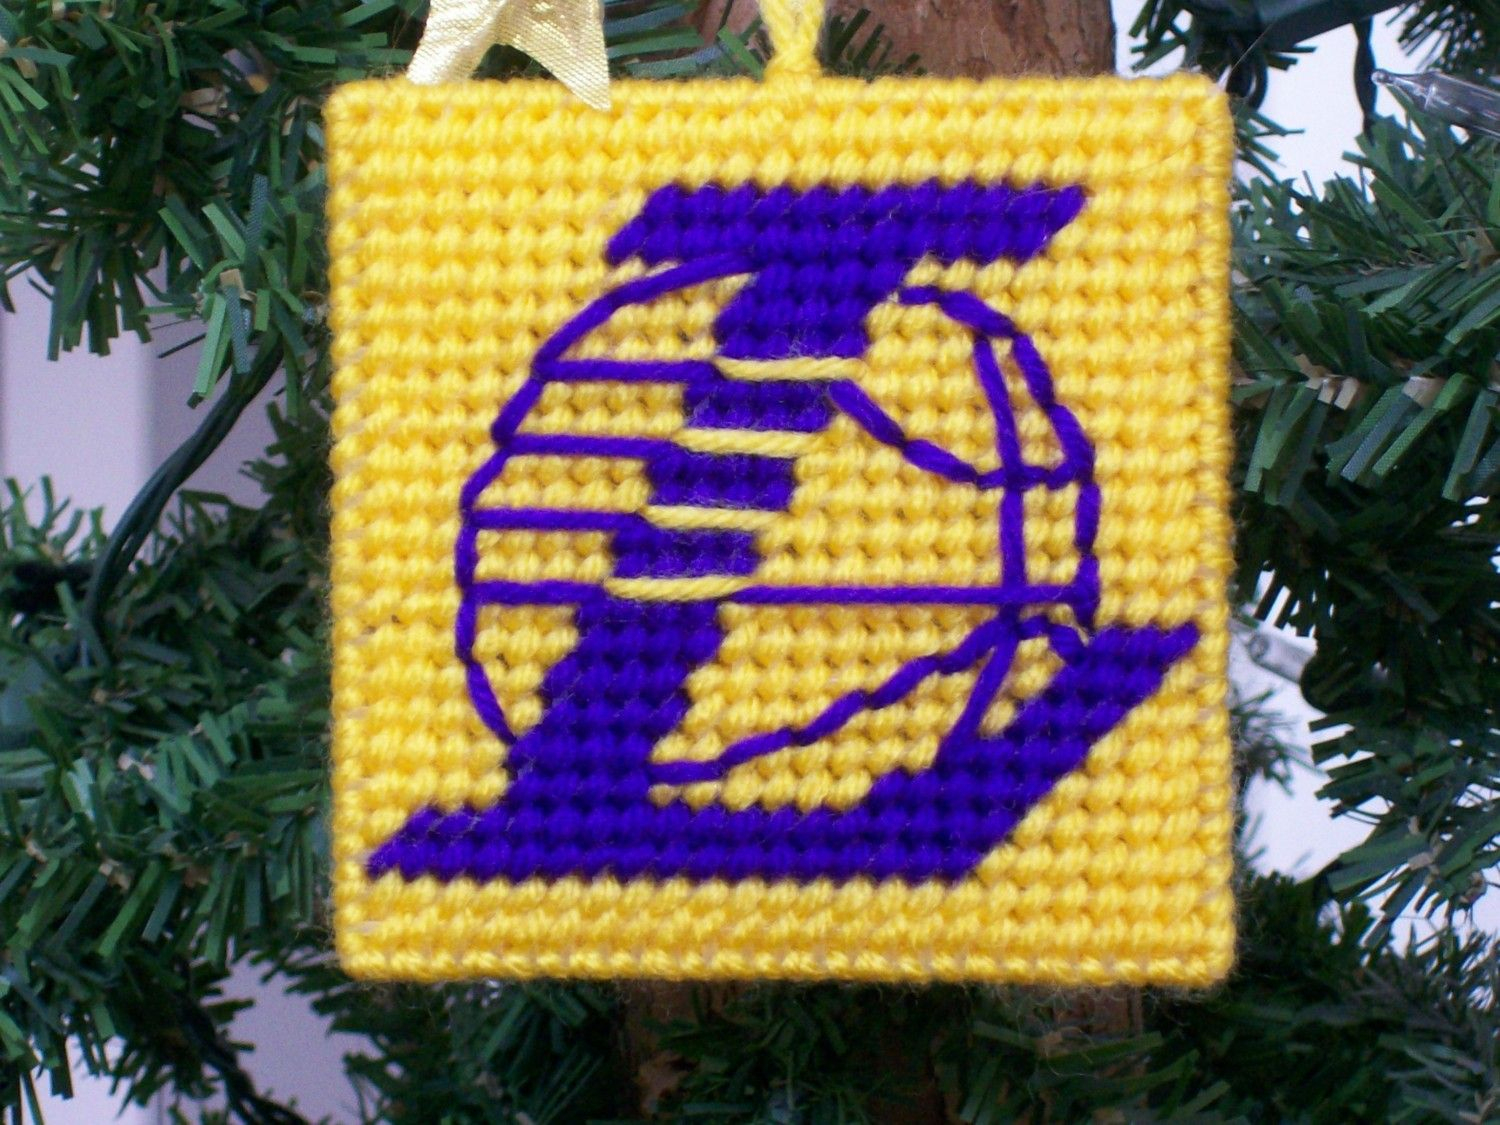 Free Basketball Plastic Canvas Patterns   Free Printable Plastic - Printable Plastic Canvas Patterns Free Online